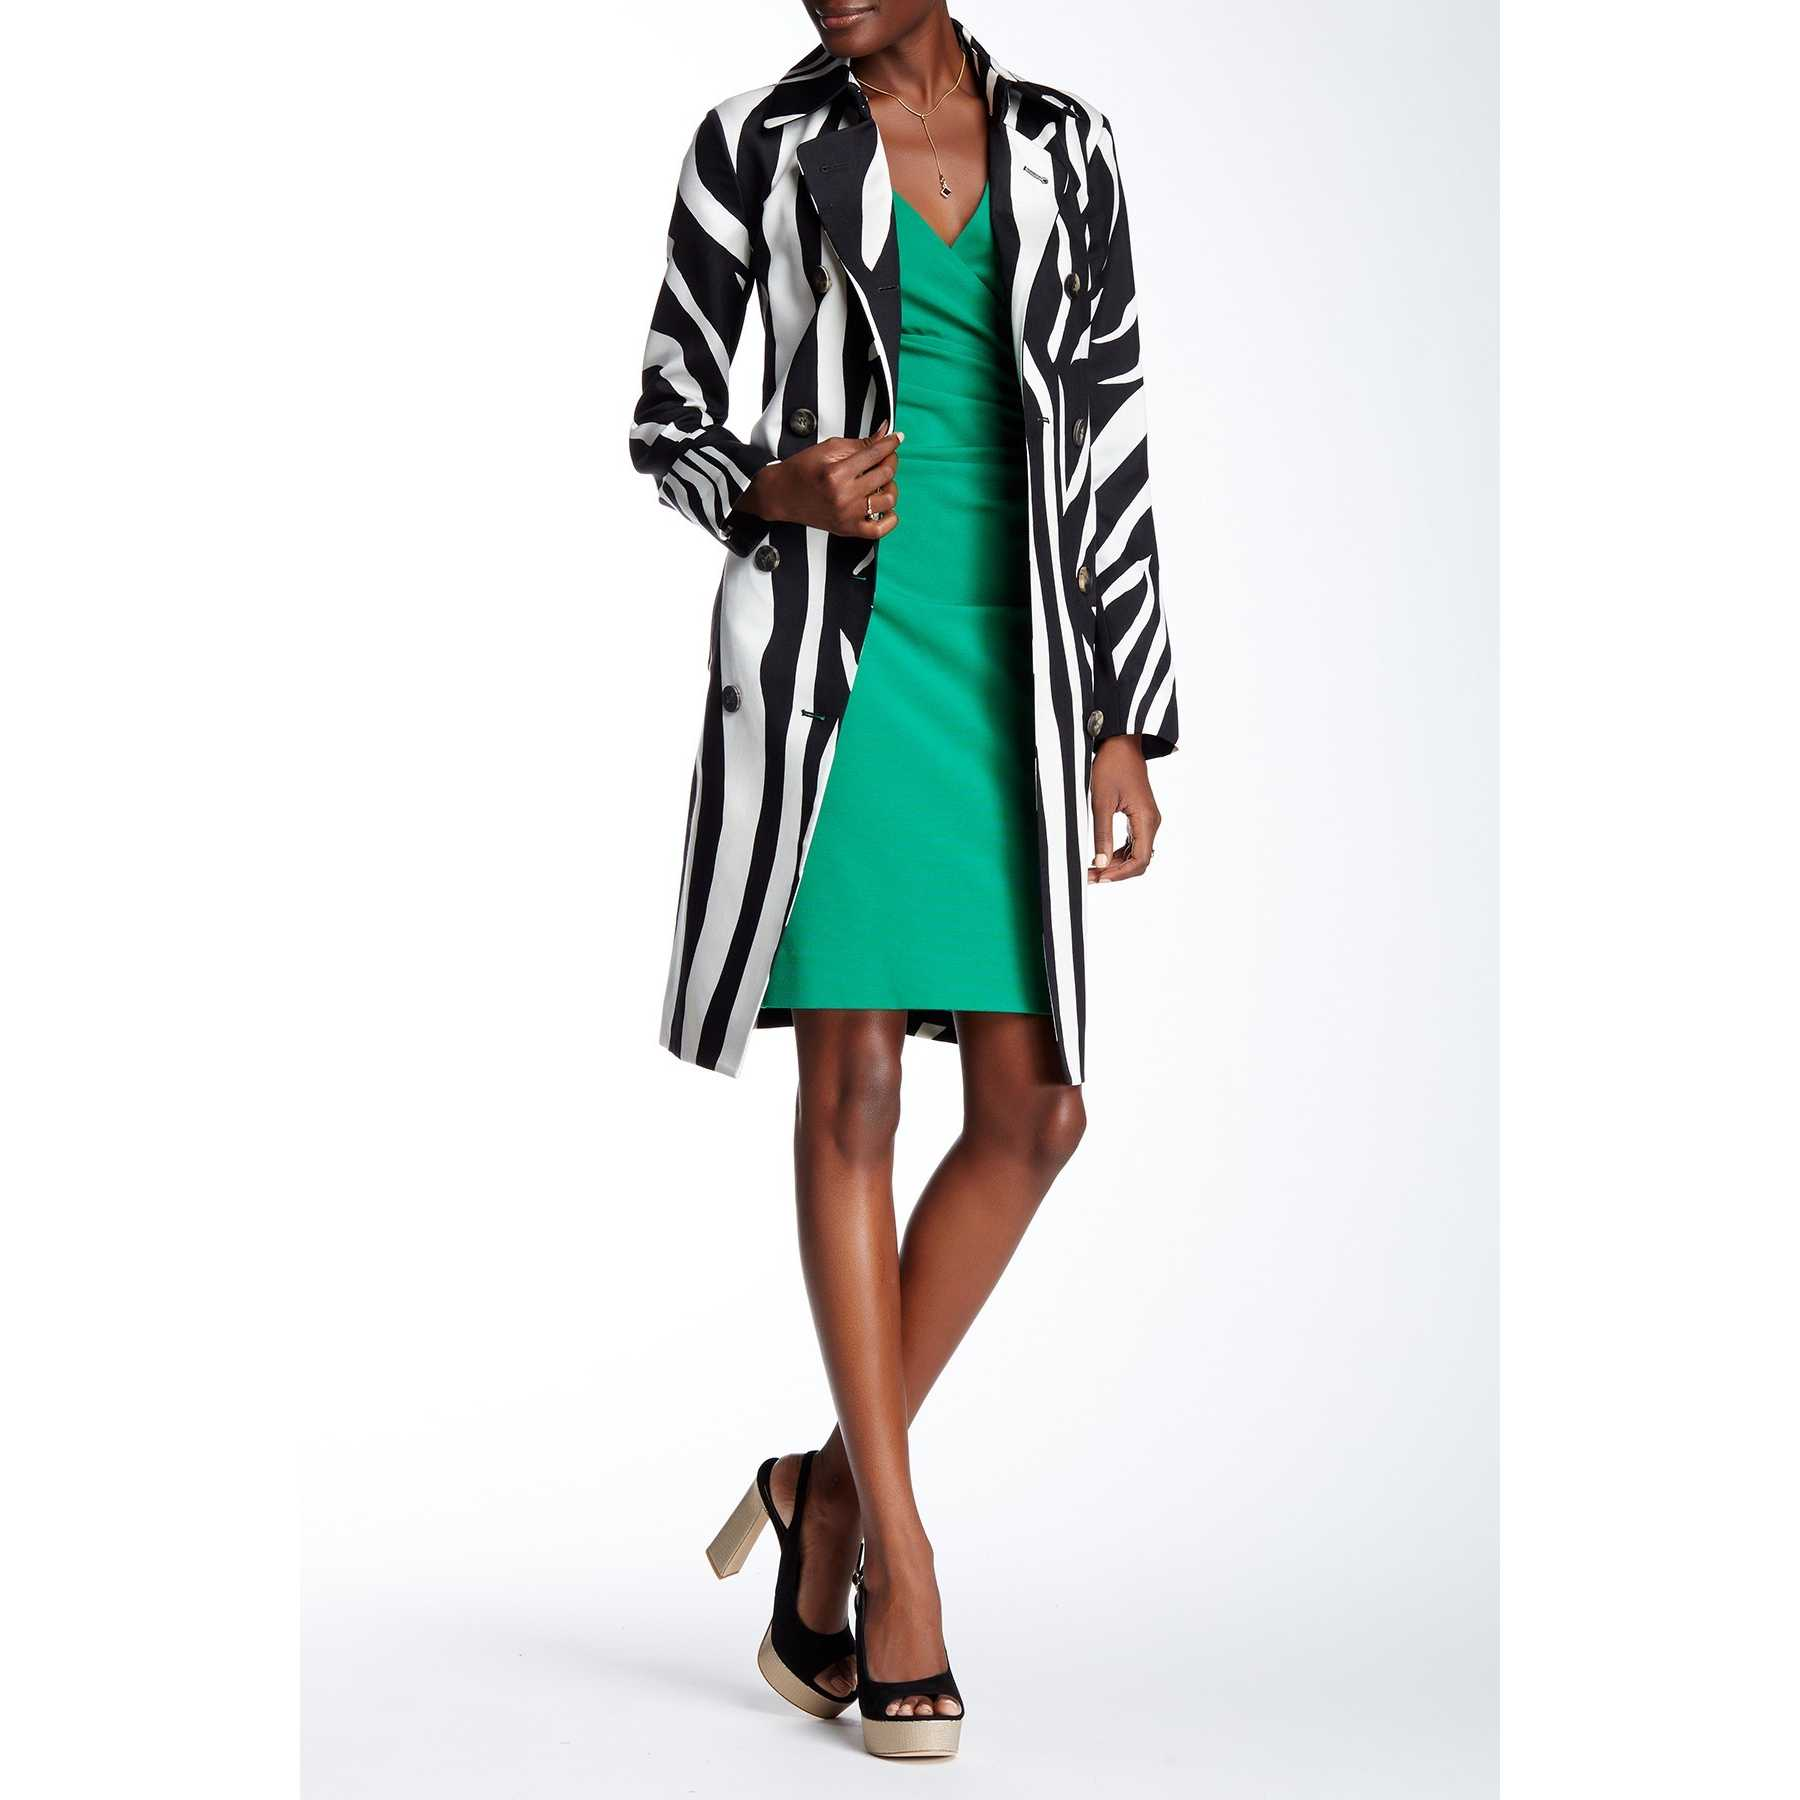 Diane von Furstenberg Libby Wool Blend Print Trench Coat ZEBRA SIMPLE BLACK trench dama